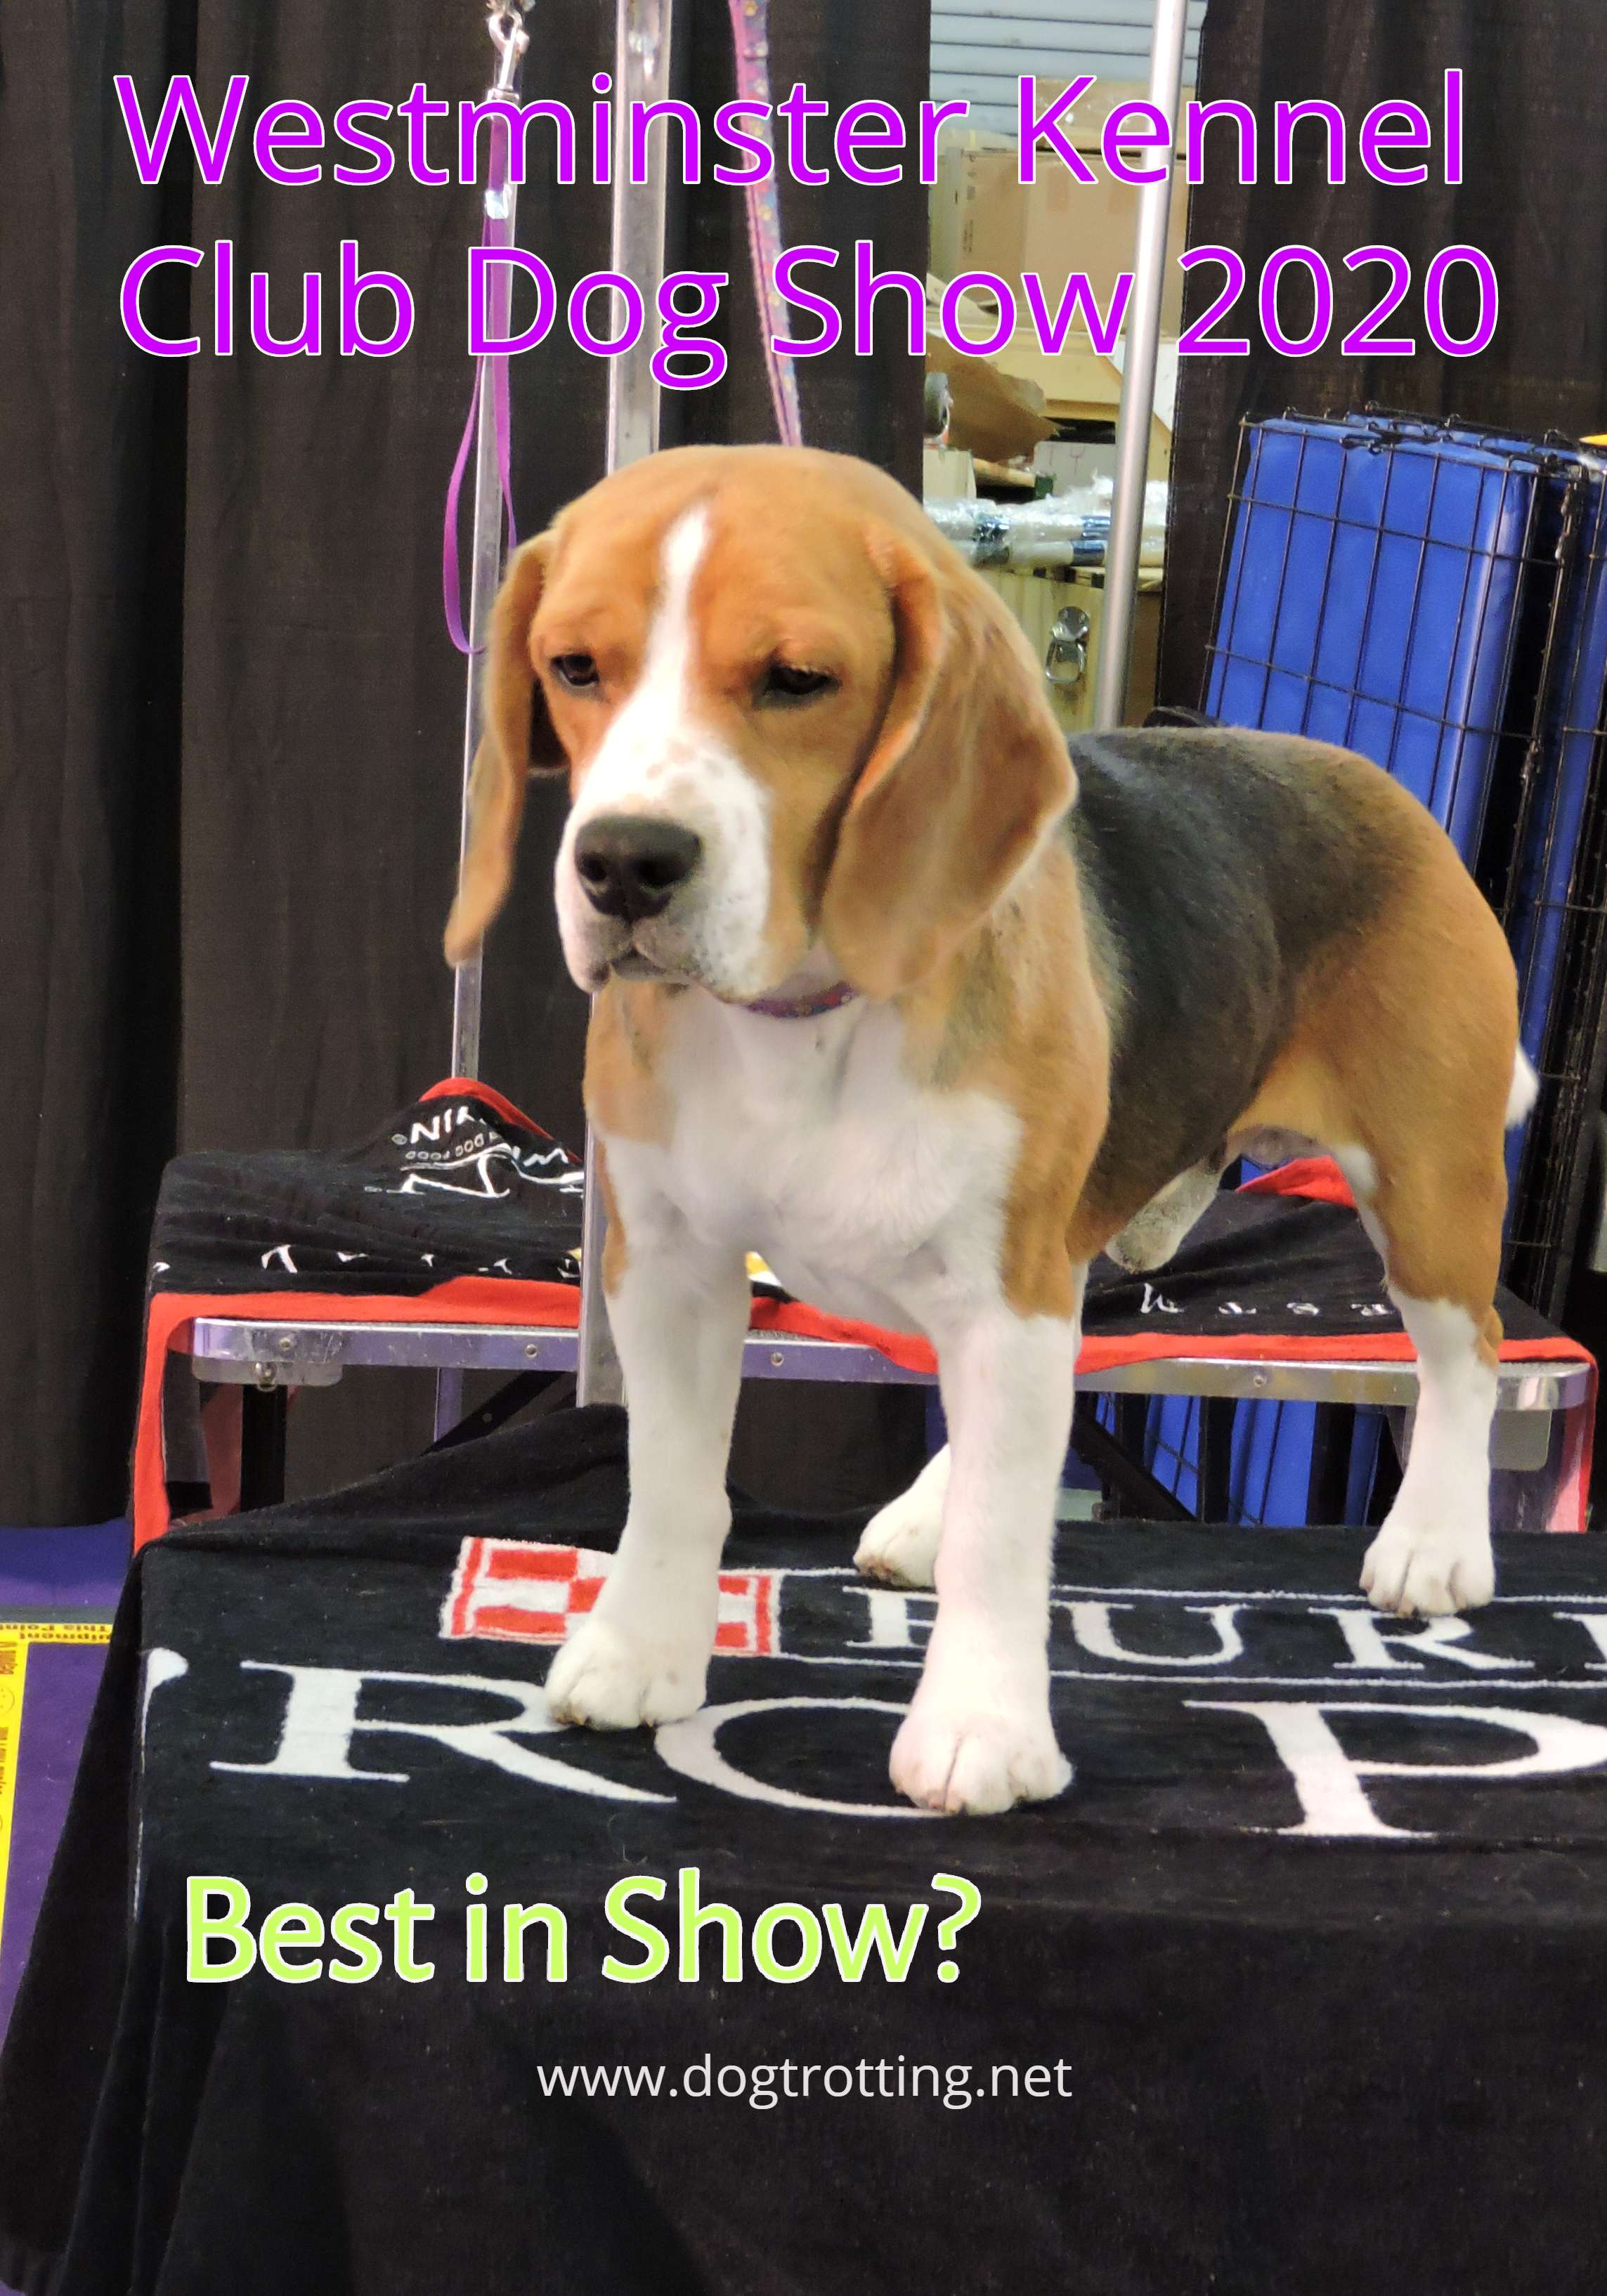 144th Westminster Dog Show 2020 Best in Show Winner is …